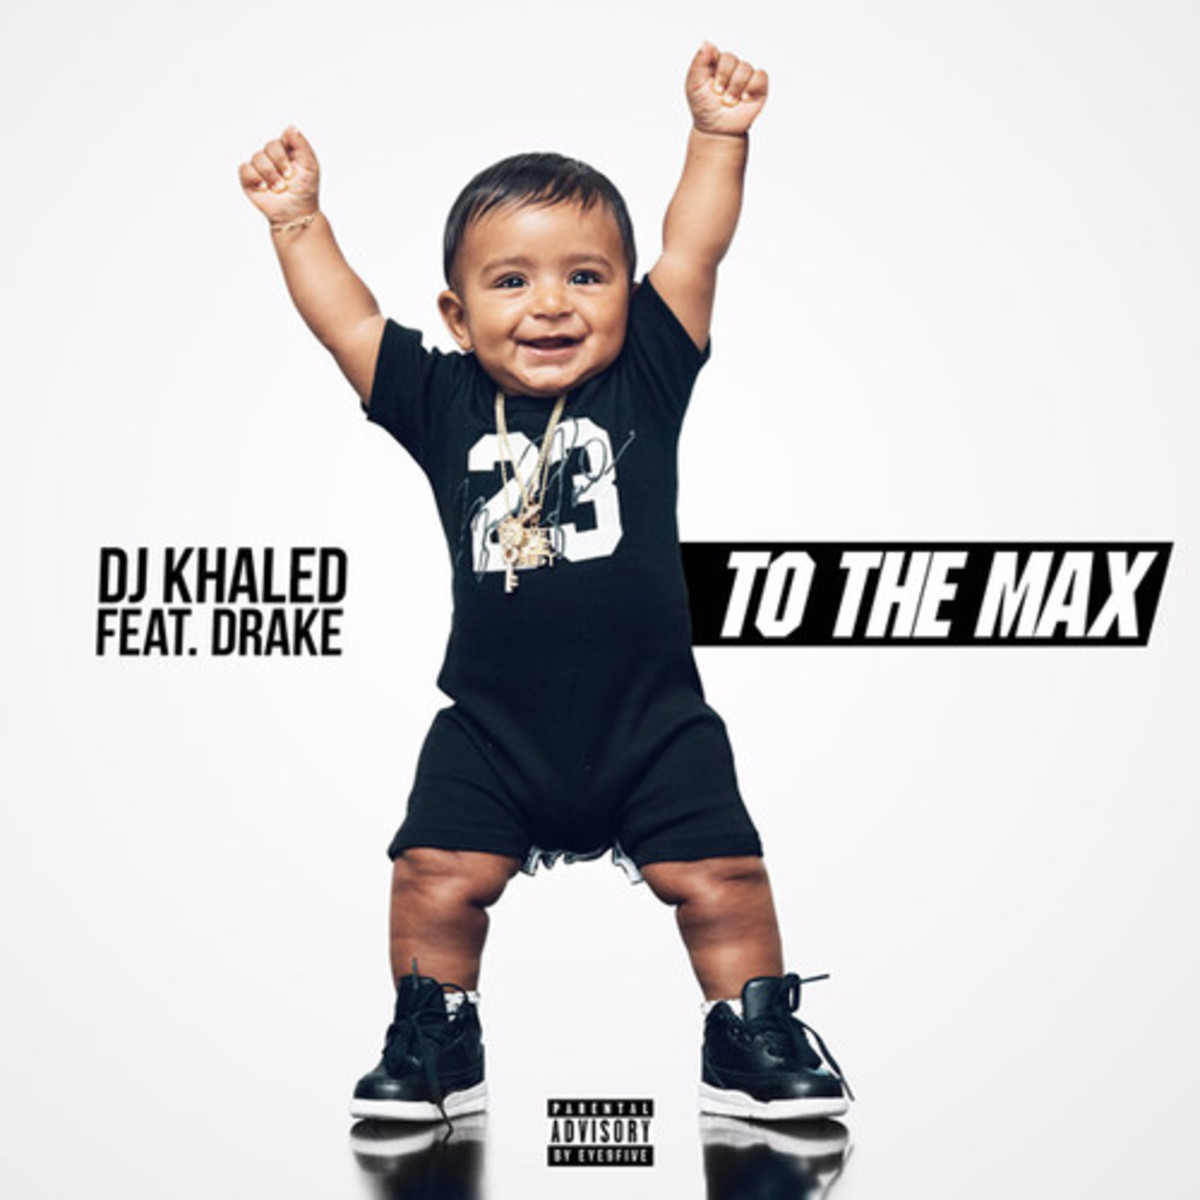 dj-khaled-to-the-max.jpg